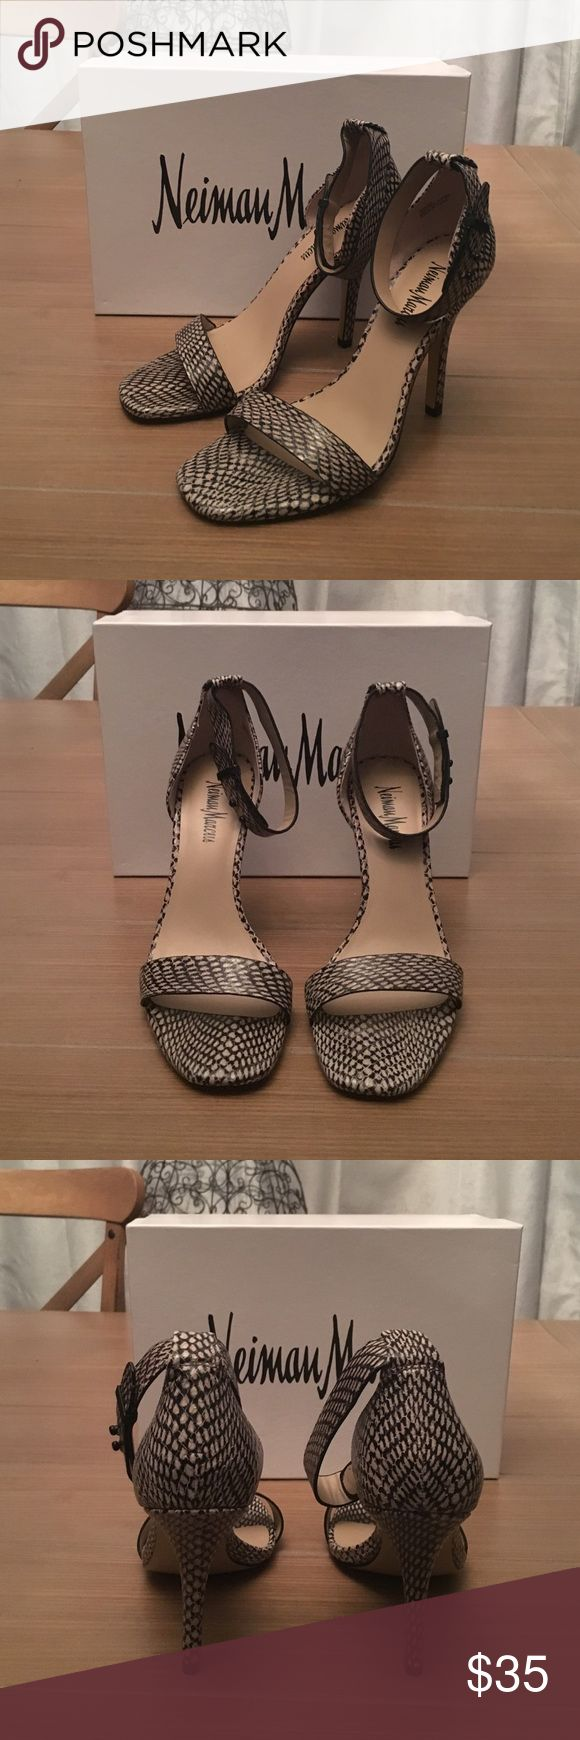 """Neiman Marcus Snake Skin Heeled Sandals Size 8 Neiman Marcus Snake 🐍 Skin Strapped Heeled Sandals Sz 8. New with box and never worn. Heel stands about 4.25"""" tall. Neiman Marcus Shoes Sandals"""